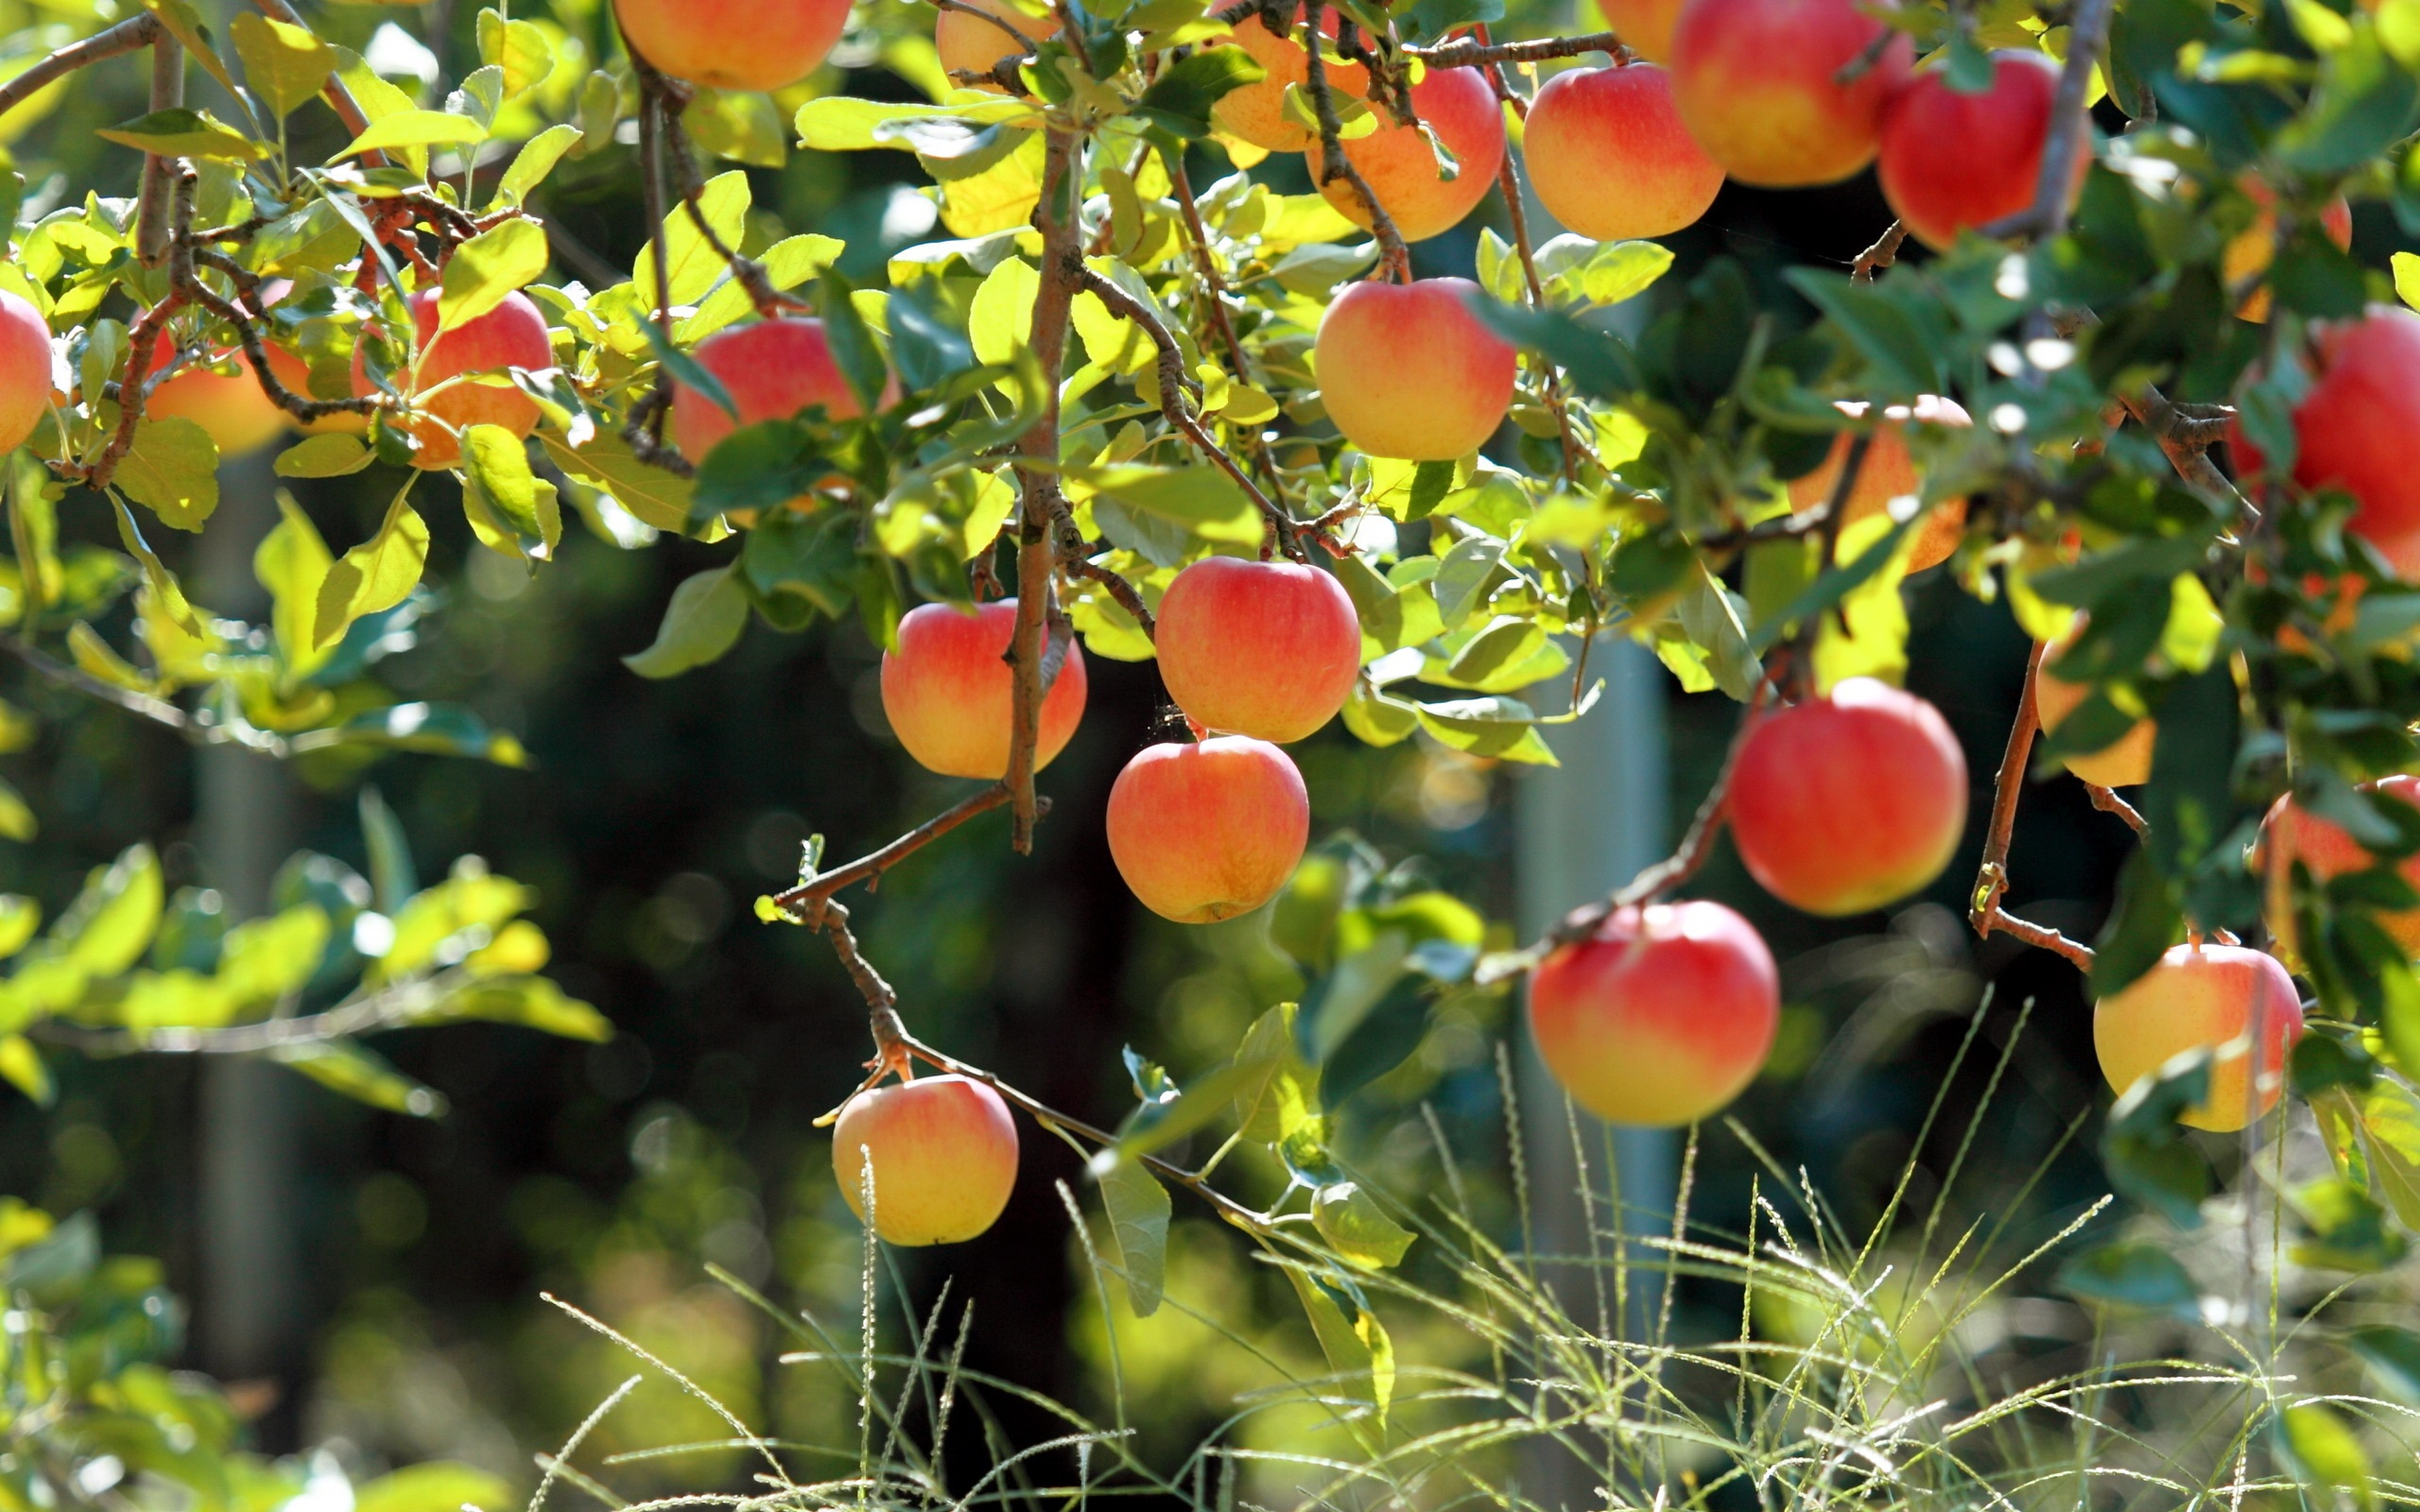 Wallpaper Fruit Garden Apple Tree Fresh Apples 2560x1600 Hd